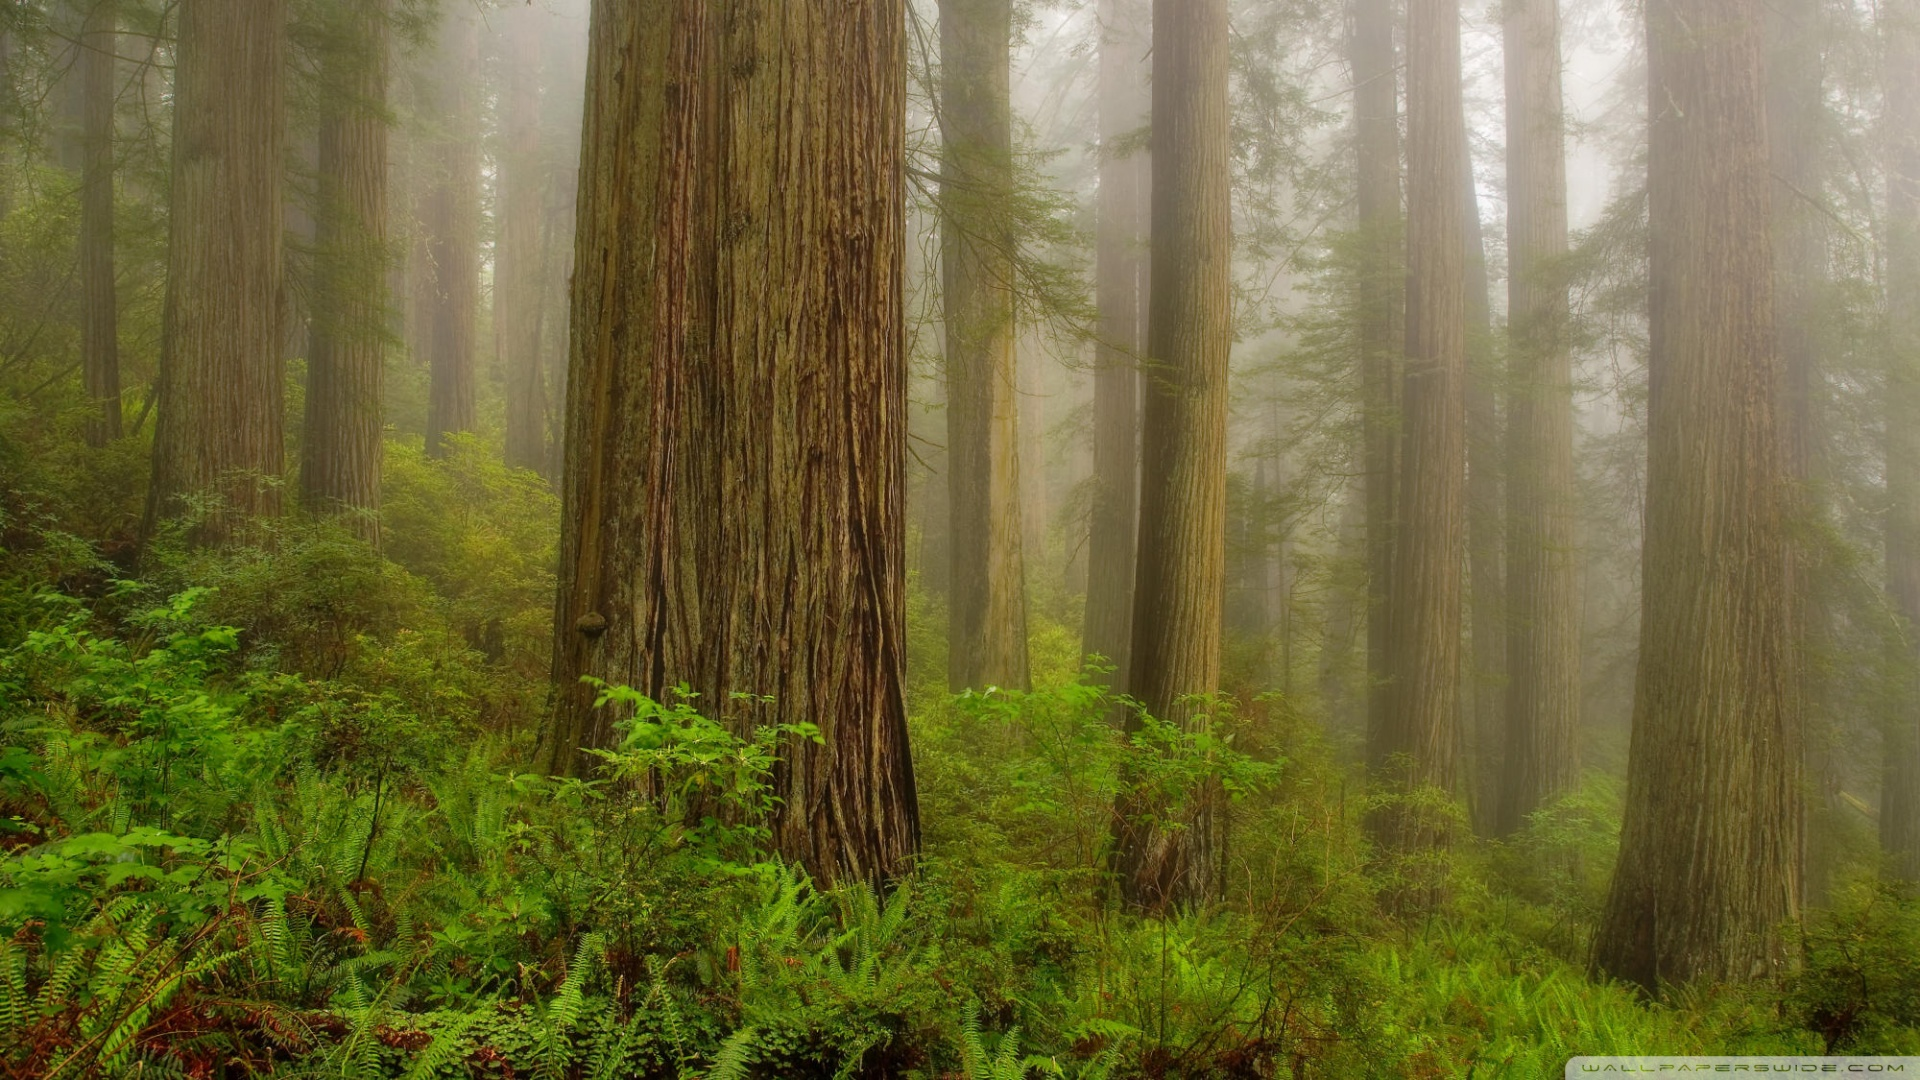 Redwoods Backgrounds And Wallpapers Wallpapersafari